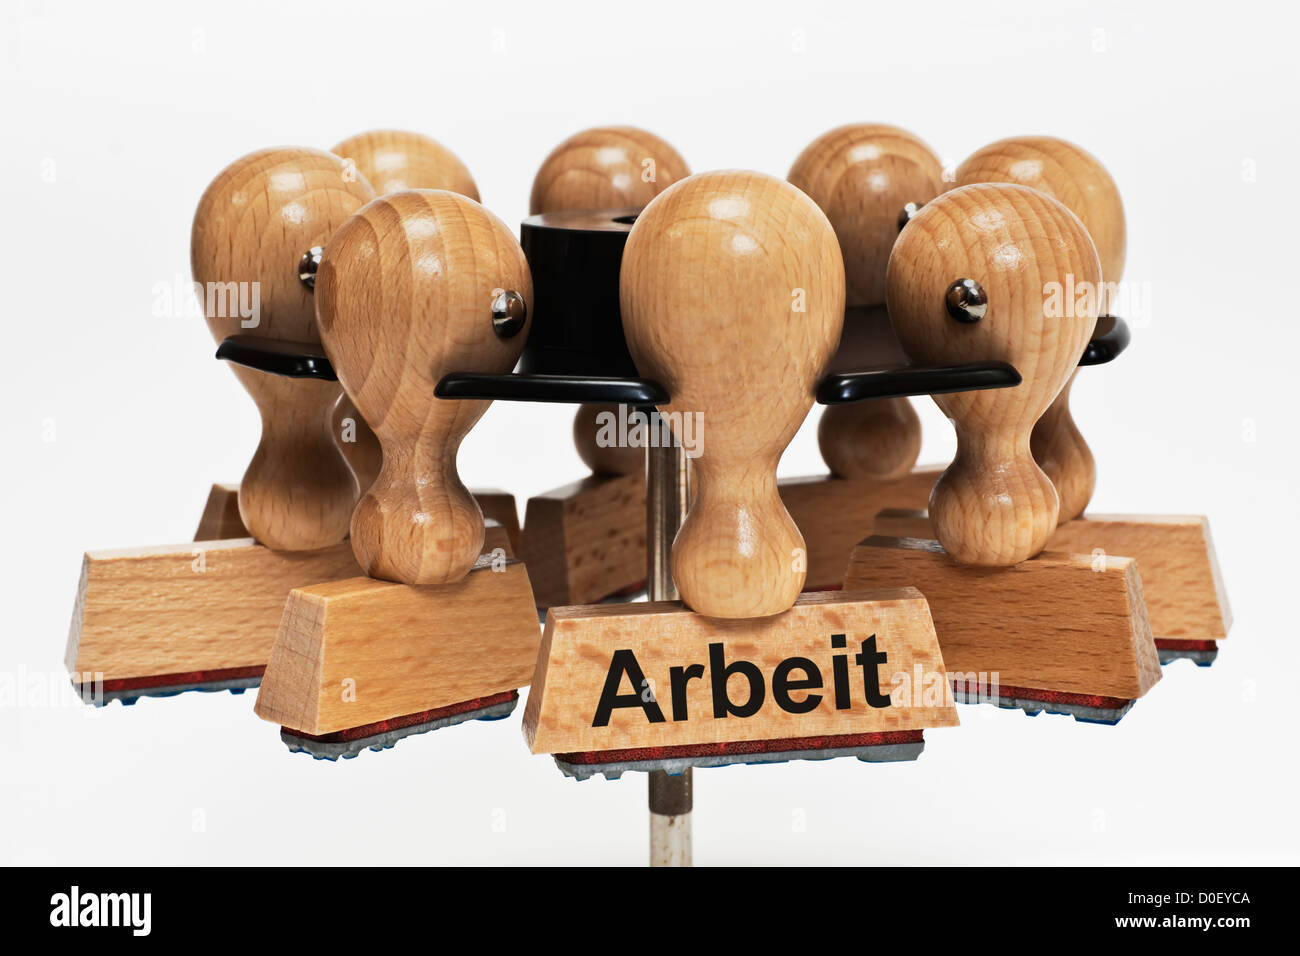 Many stamps hanging in a stamp rack, one with the German inscription Arbeit (Job), background white. - Stock Image